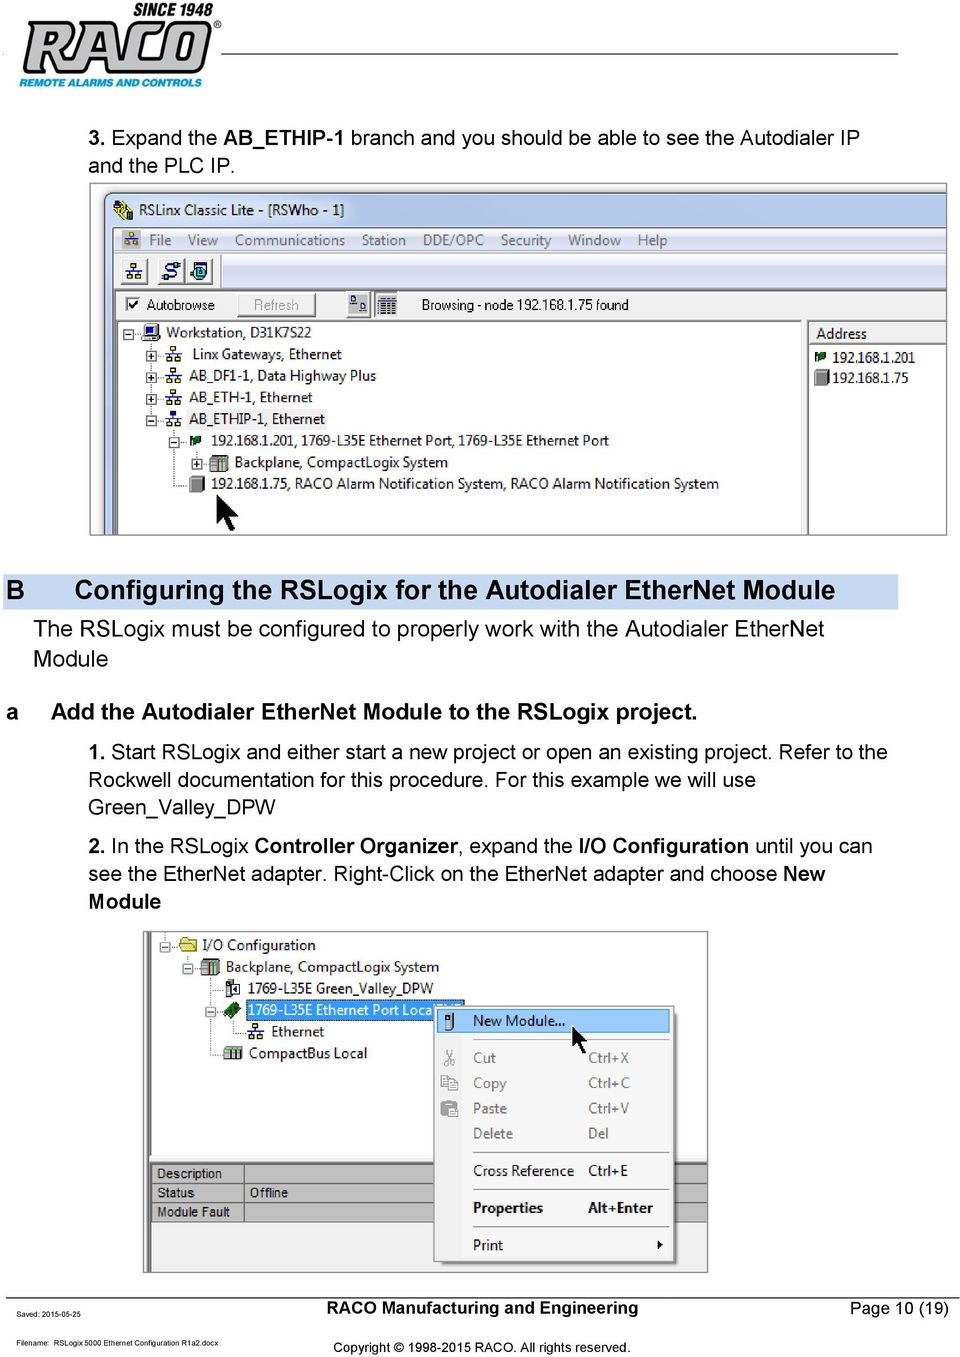 Autodialer EtherNet Module to the RSLogix project. 1. Start RSLogix and either start a new project or open an existing project.